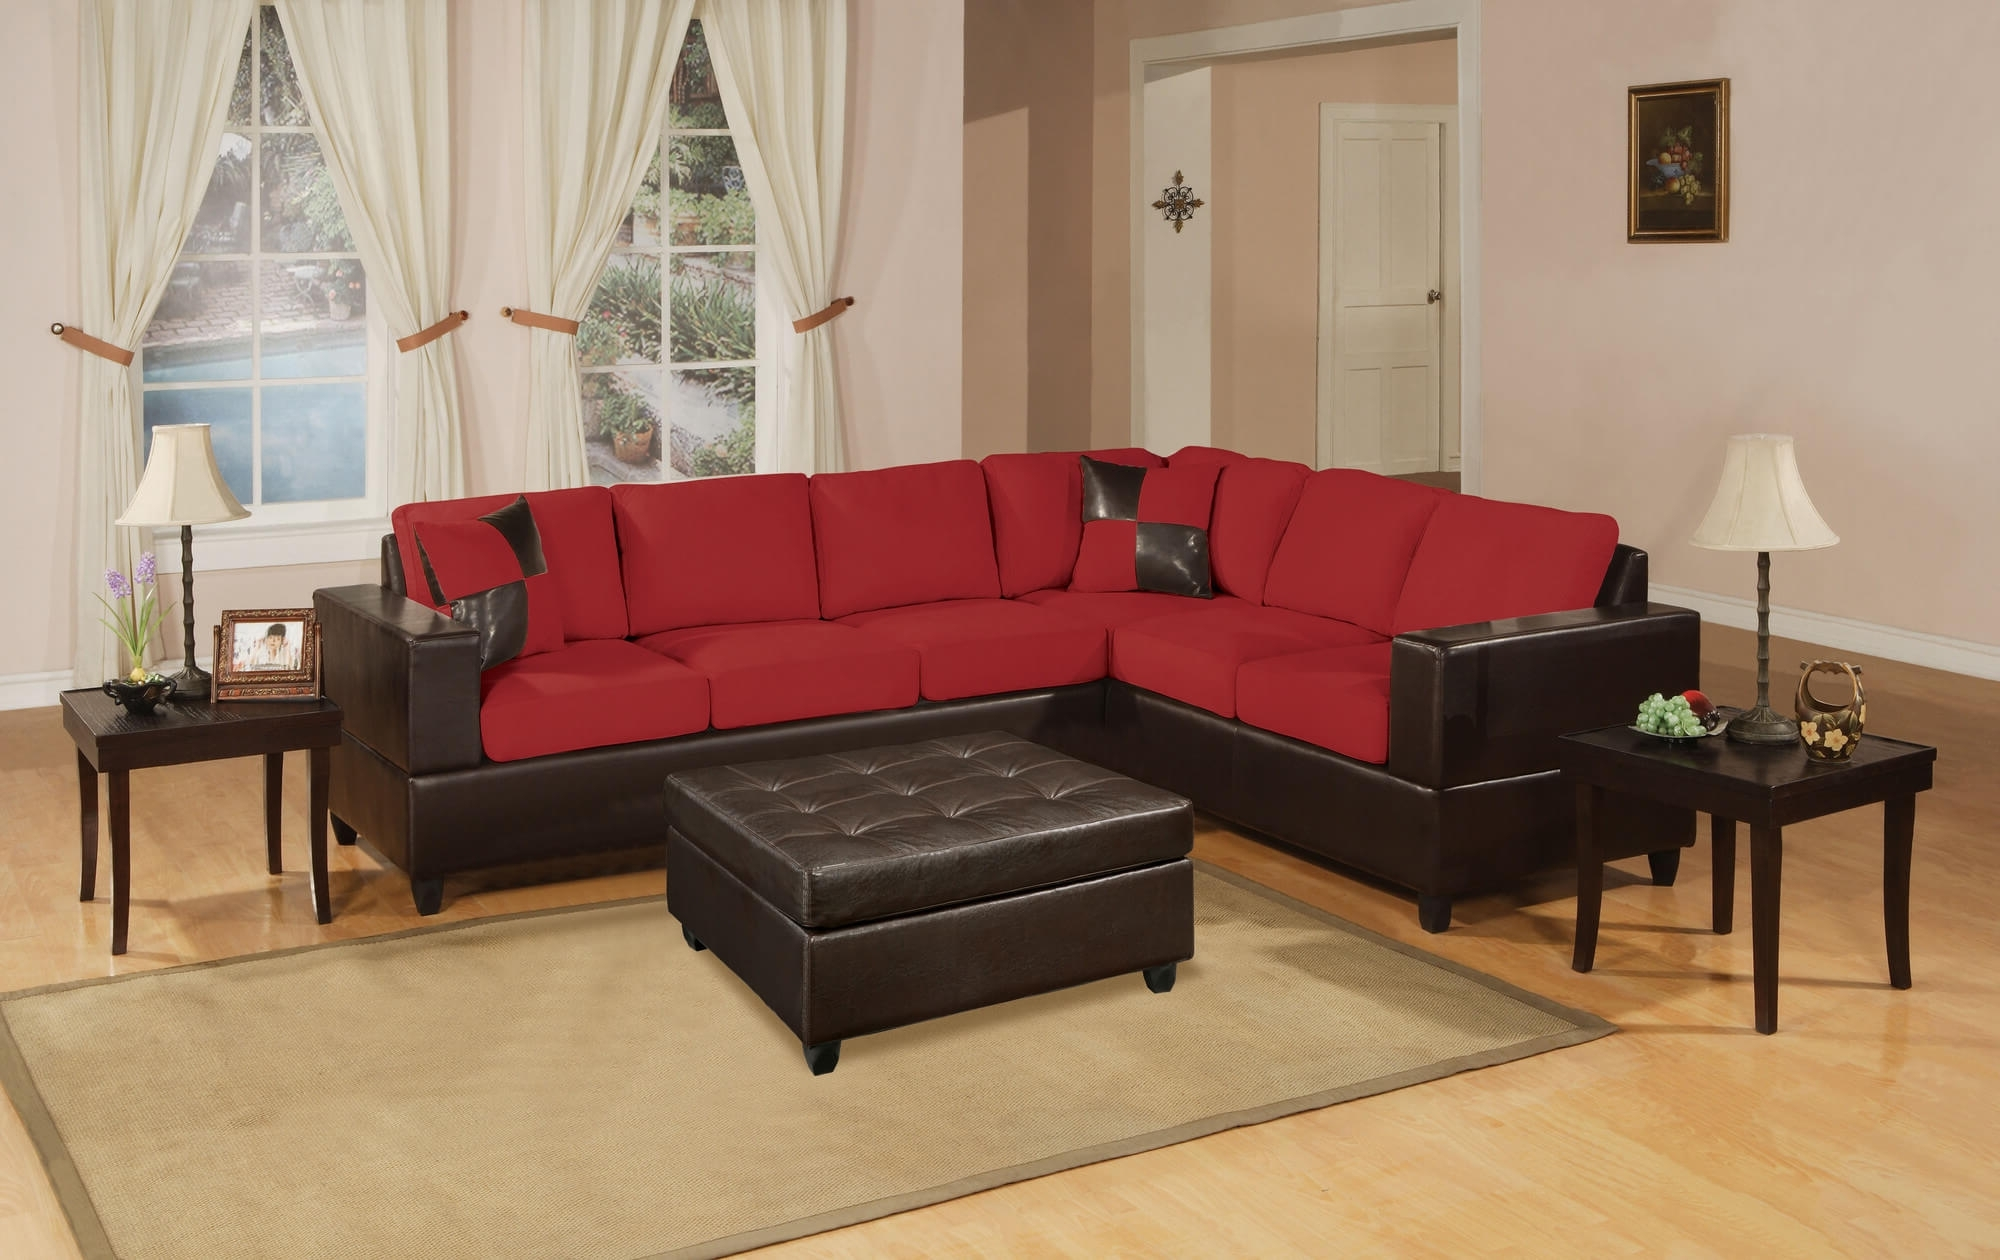 18 Stylish Modern Red Sectional Sofas For Most Recent Red Sectional Sofas (View 2 of 20)